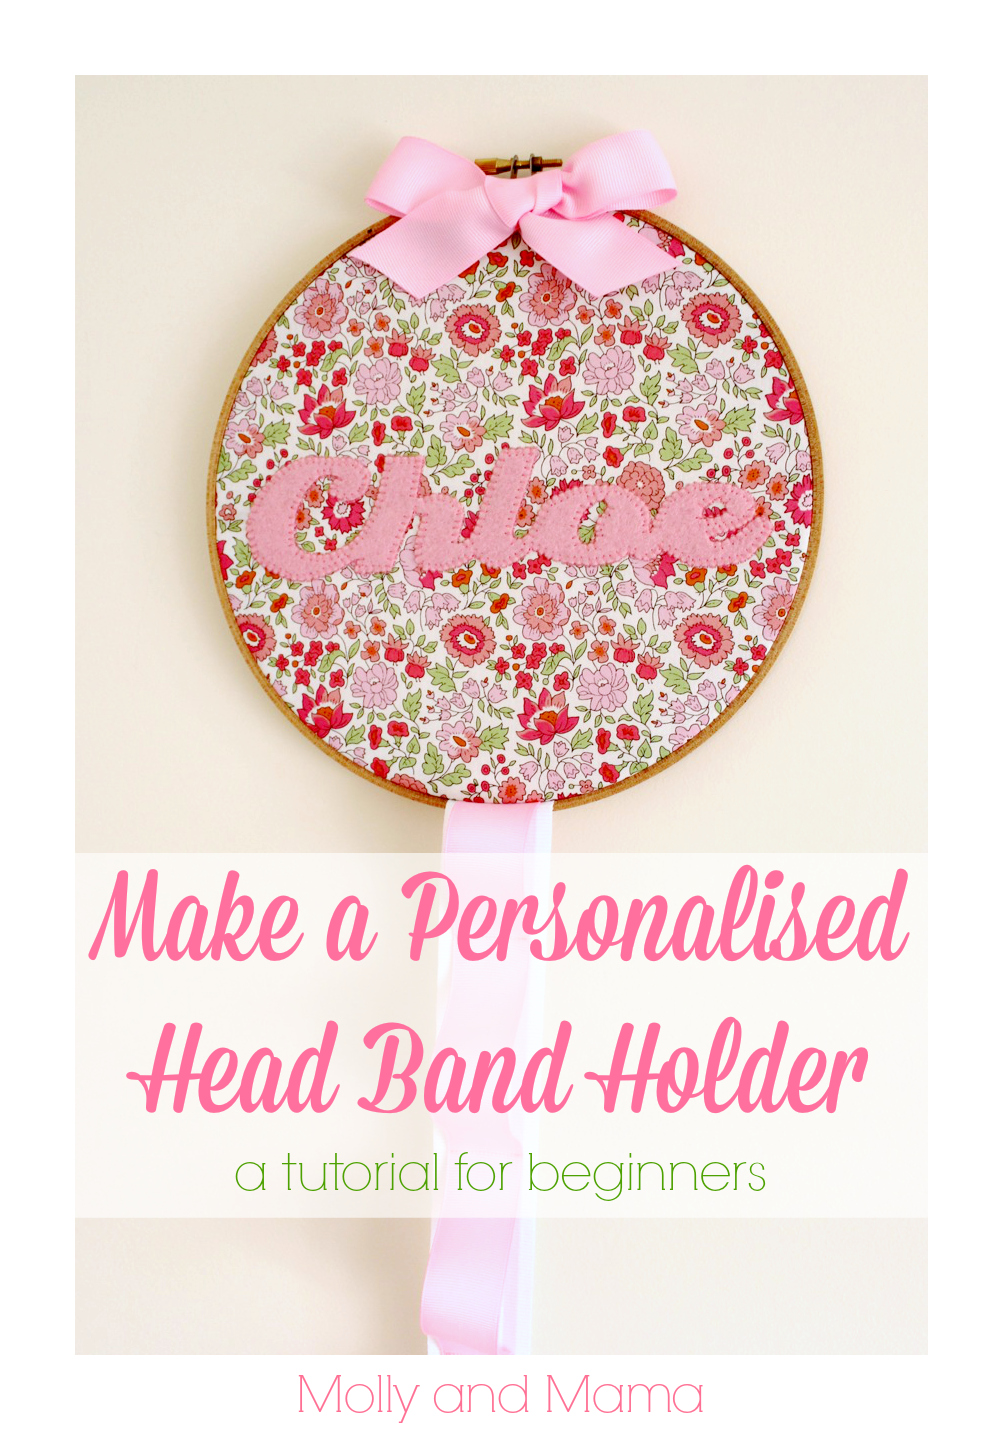 Make a personalised Embroidery Hoop Headband Holder by Molly and Mama